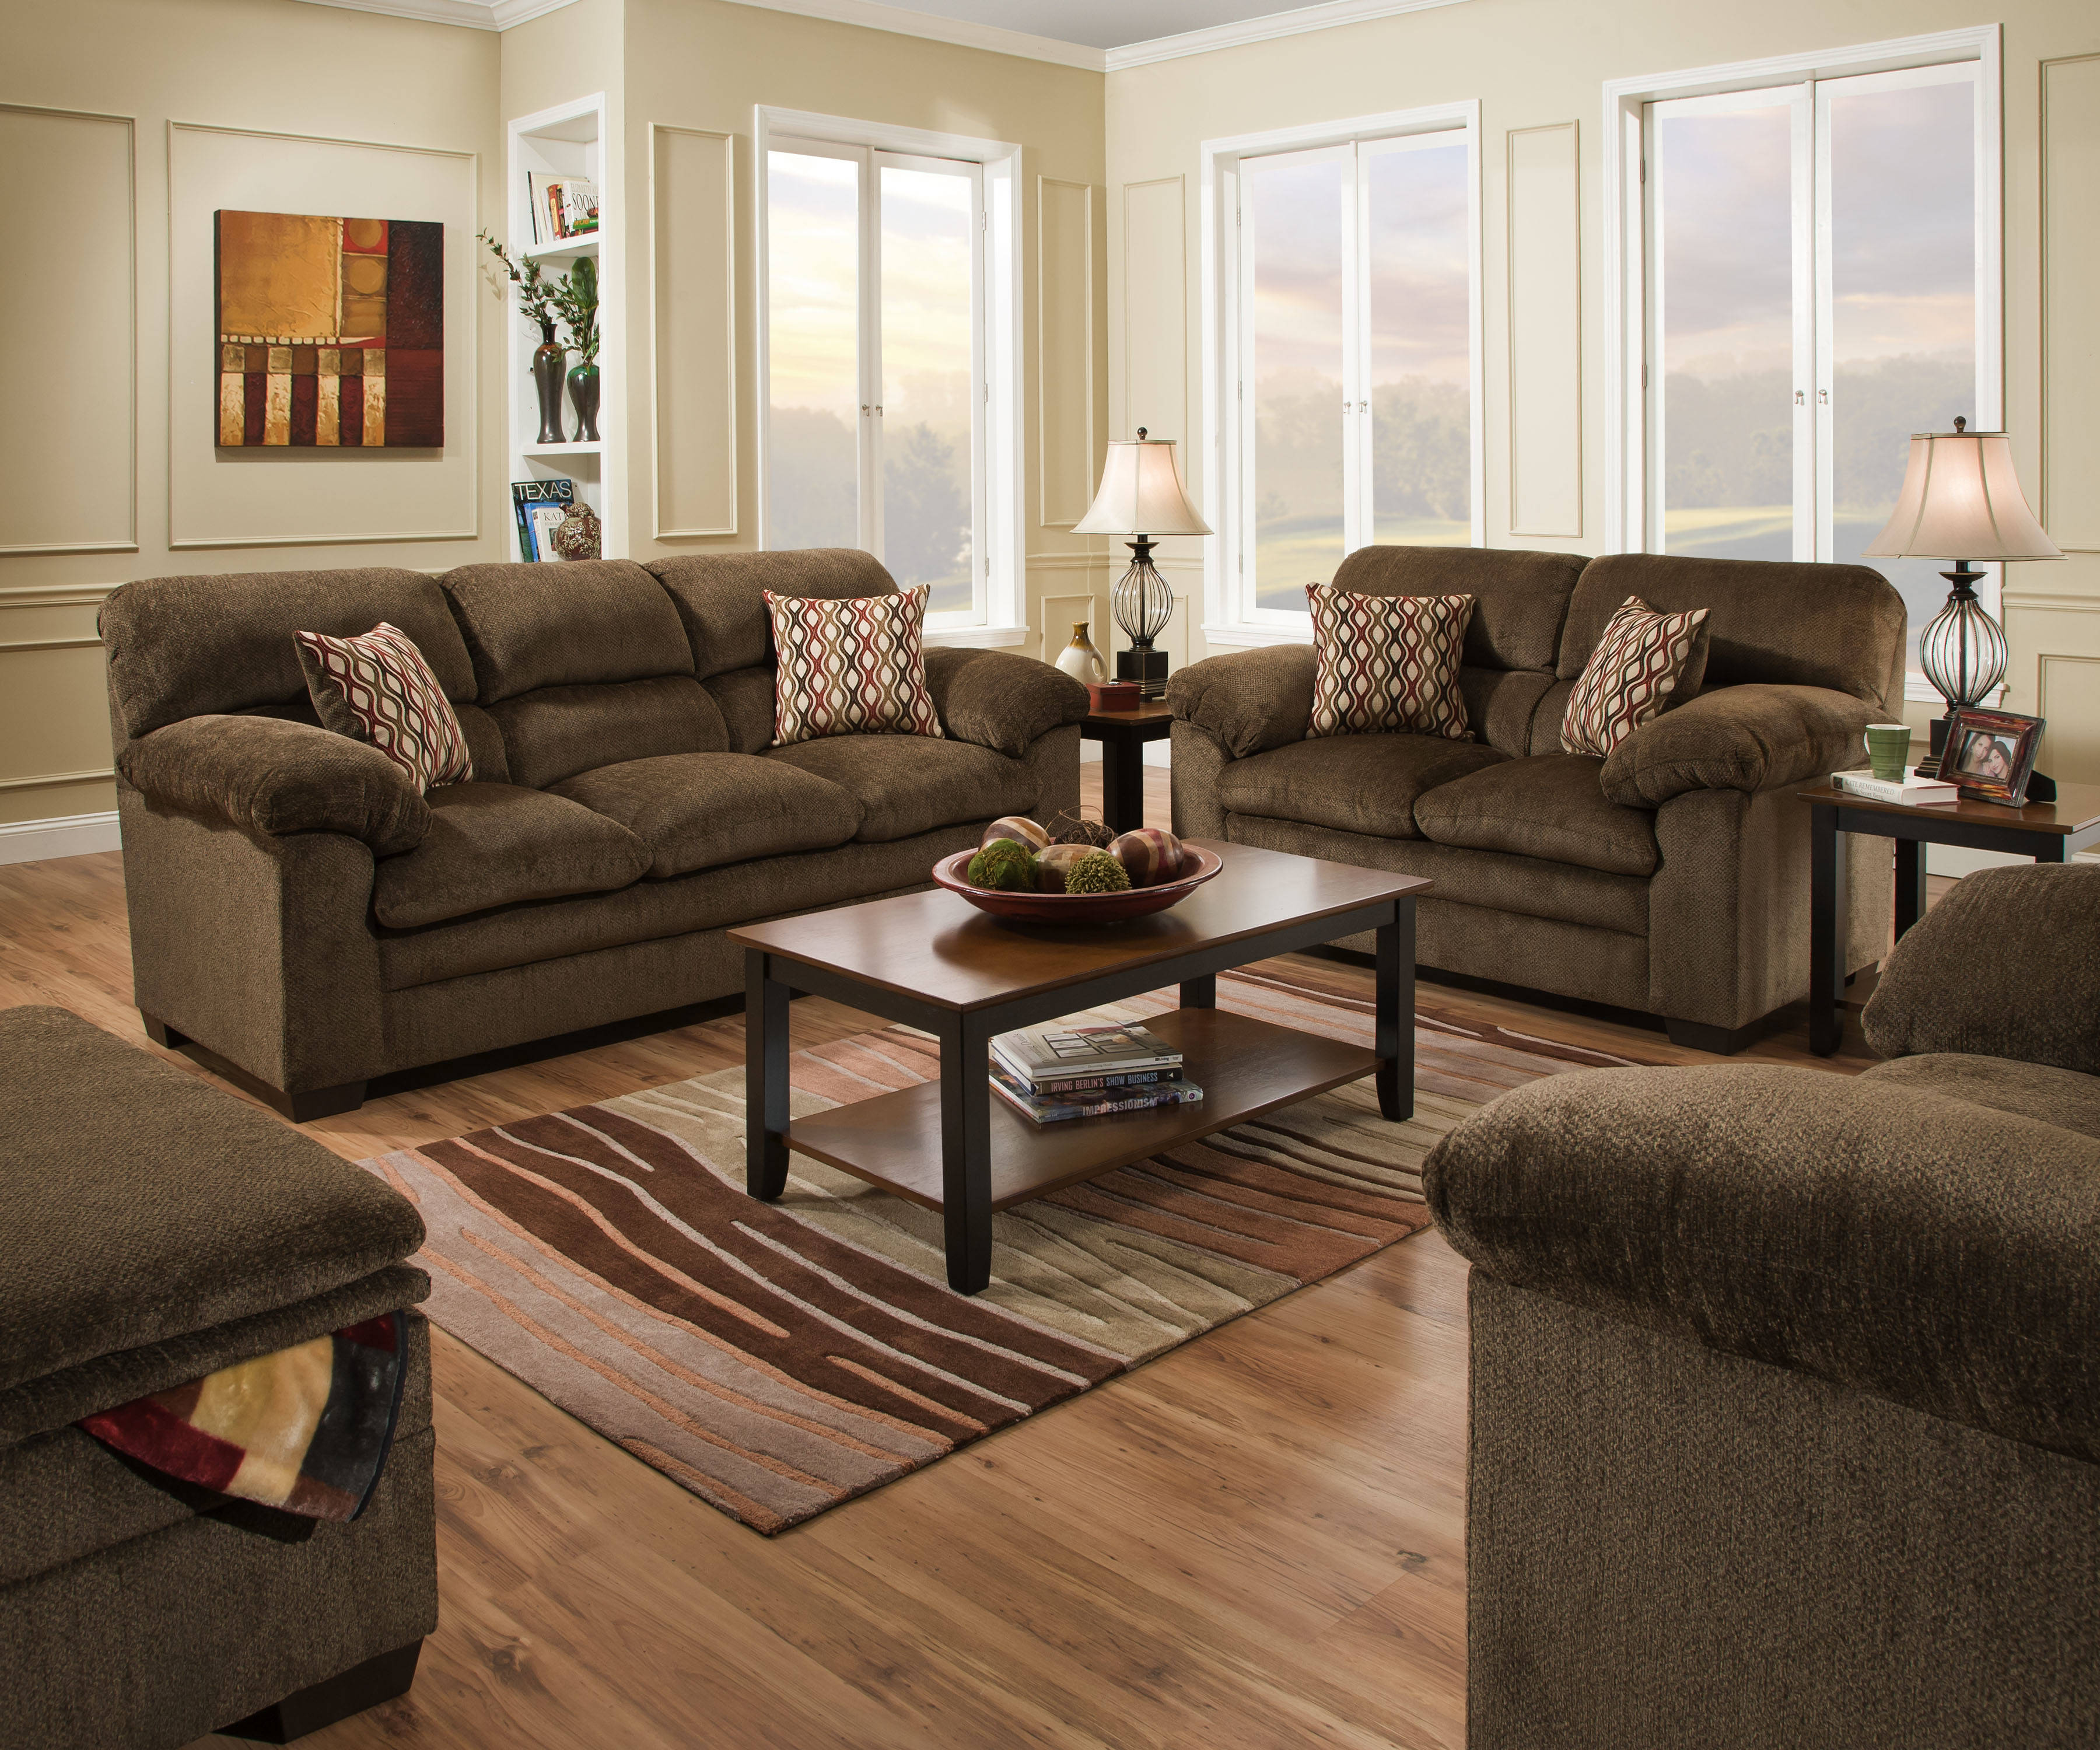 United furniture harlow chestnut chair and ottoman set - Simmons living room furniture sets ...